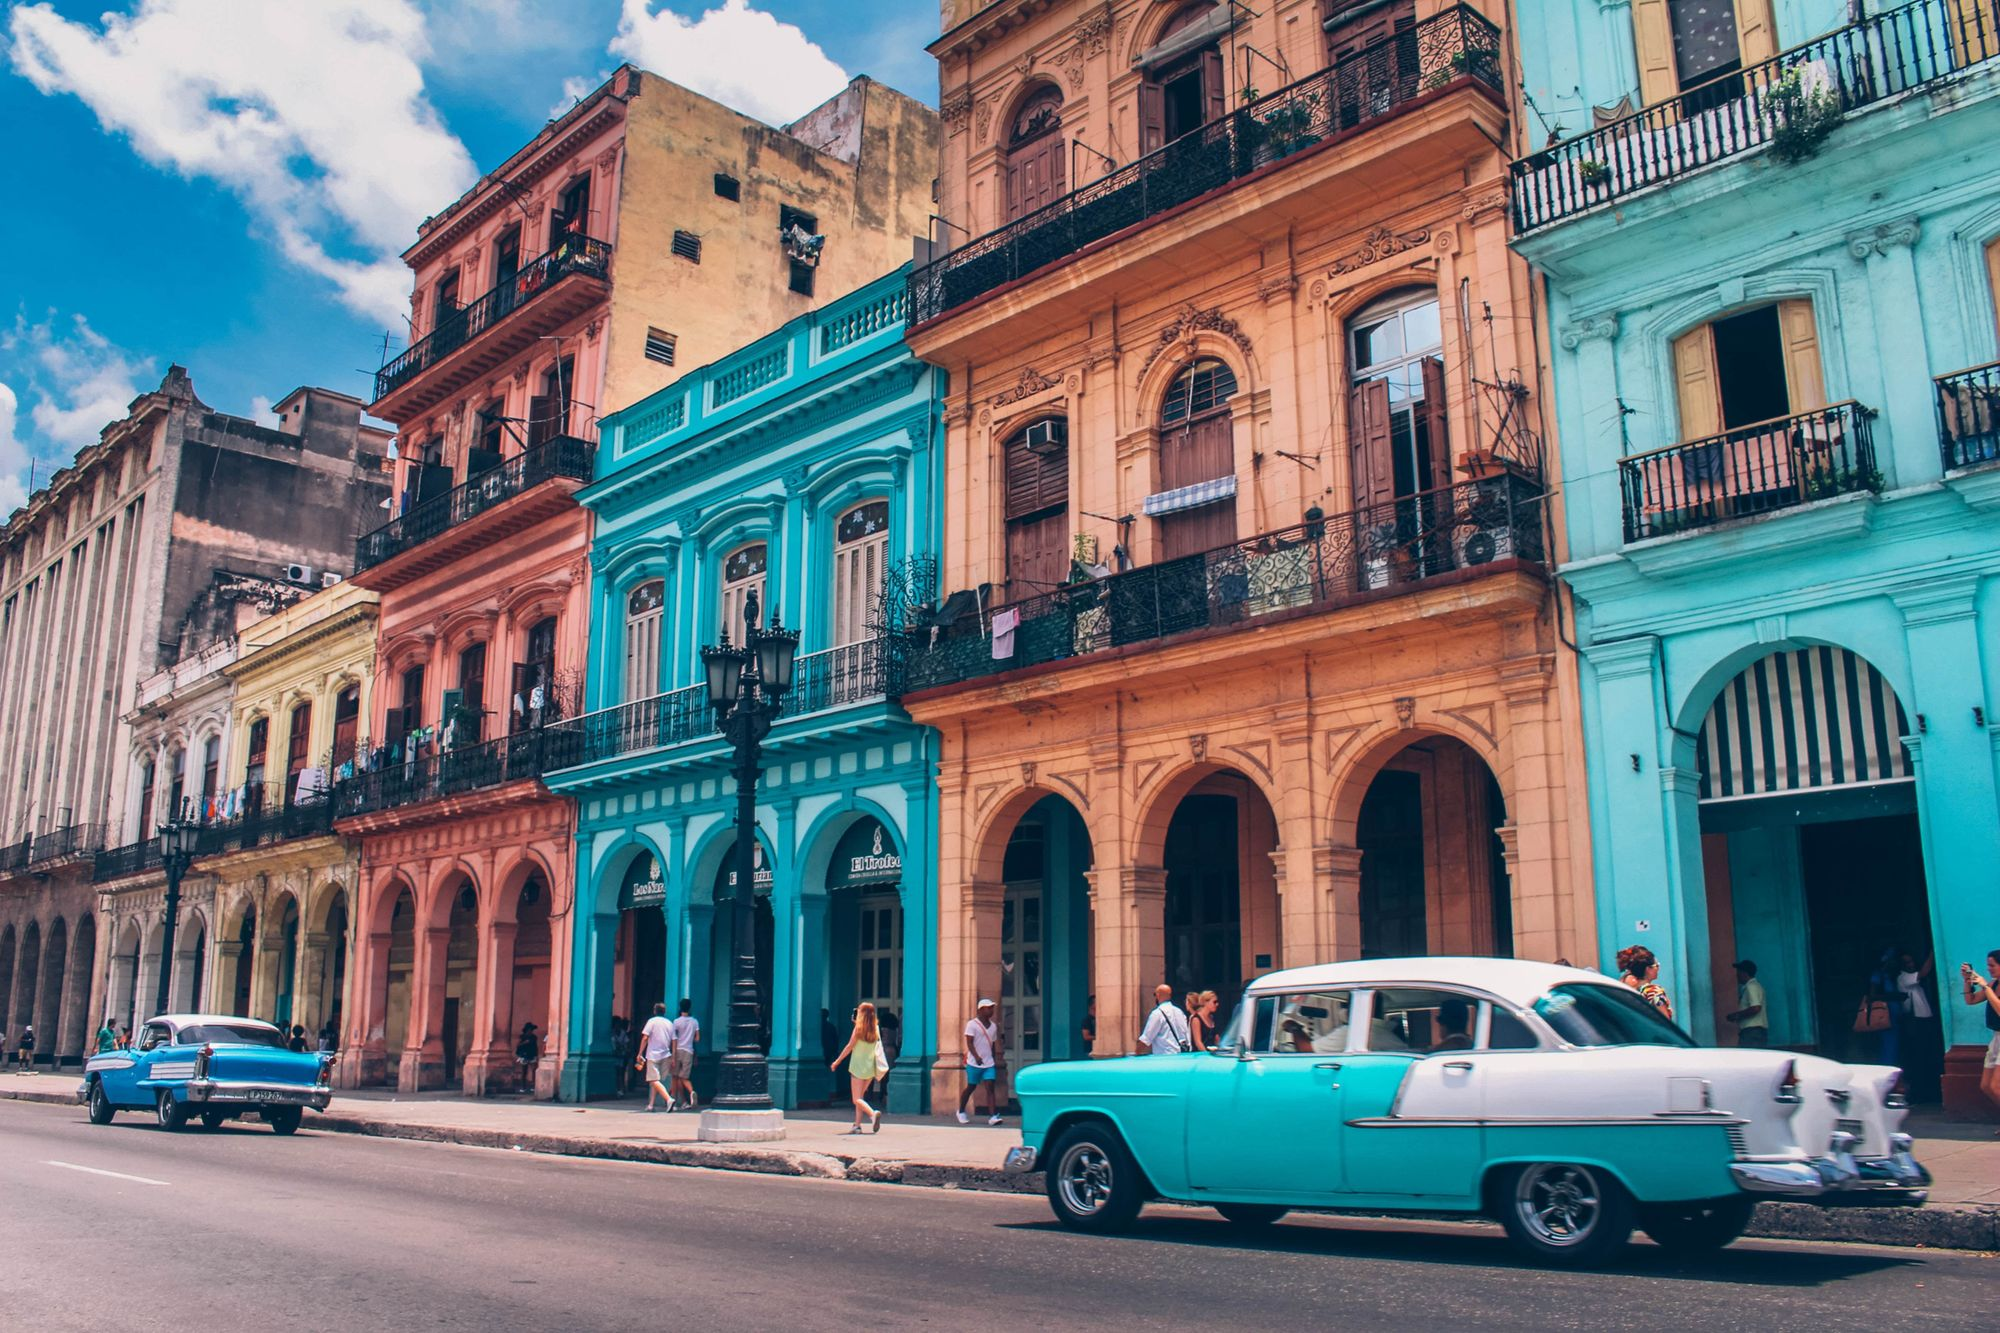 Cuban buildings and cars